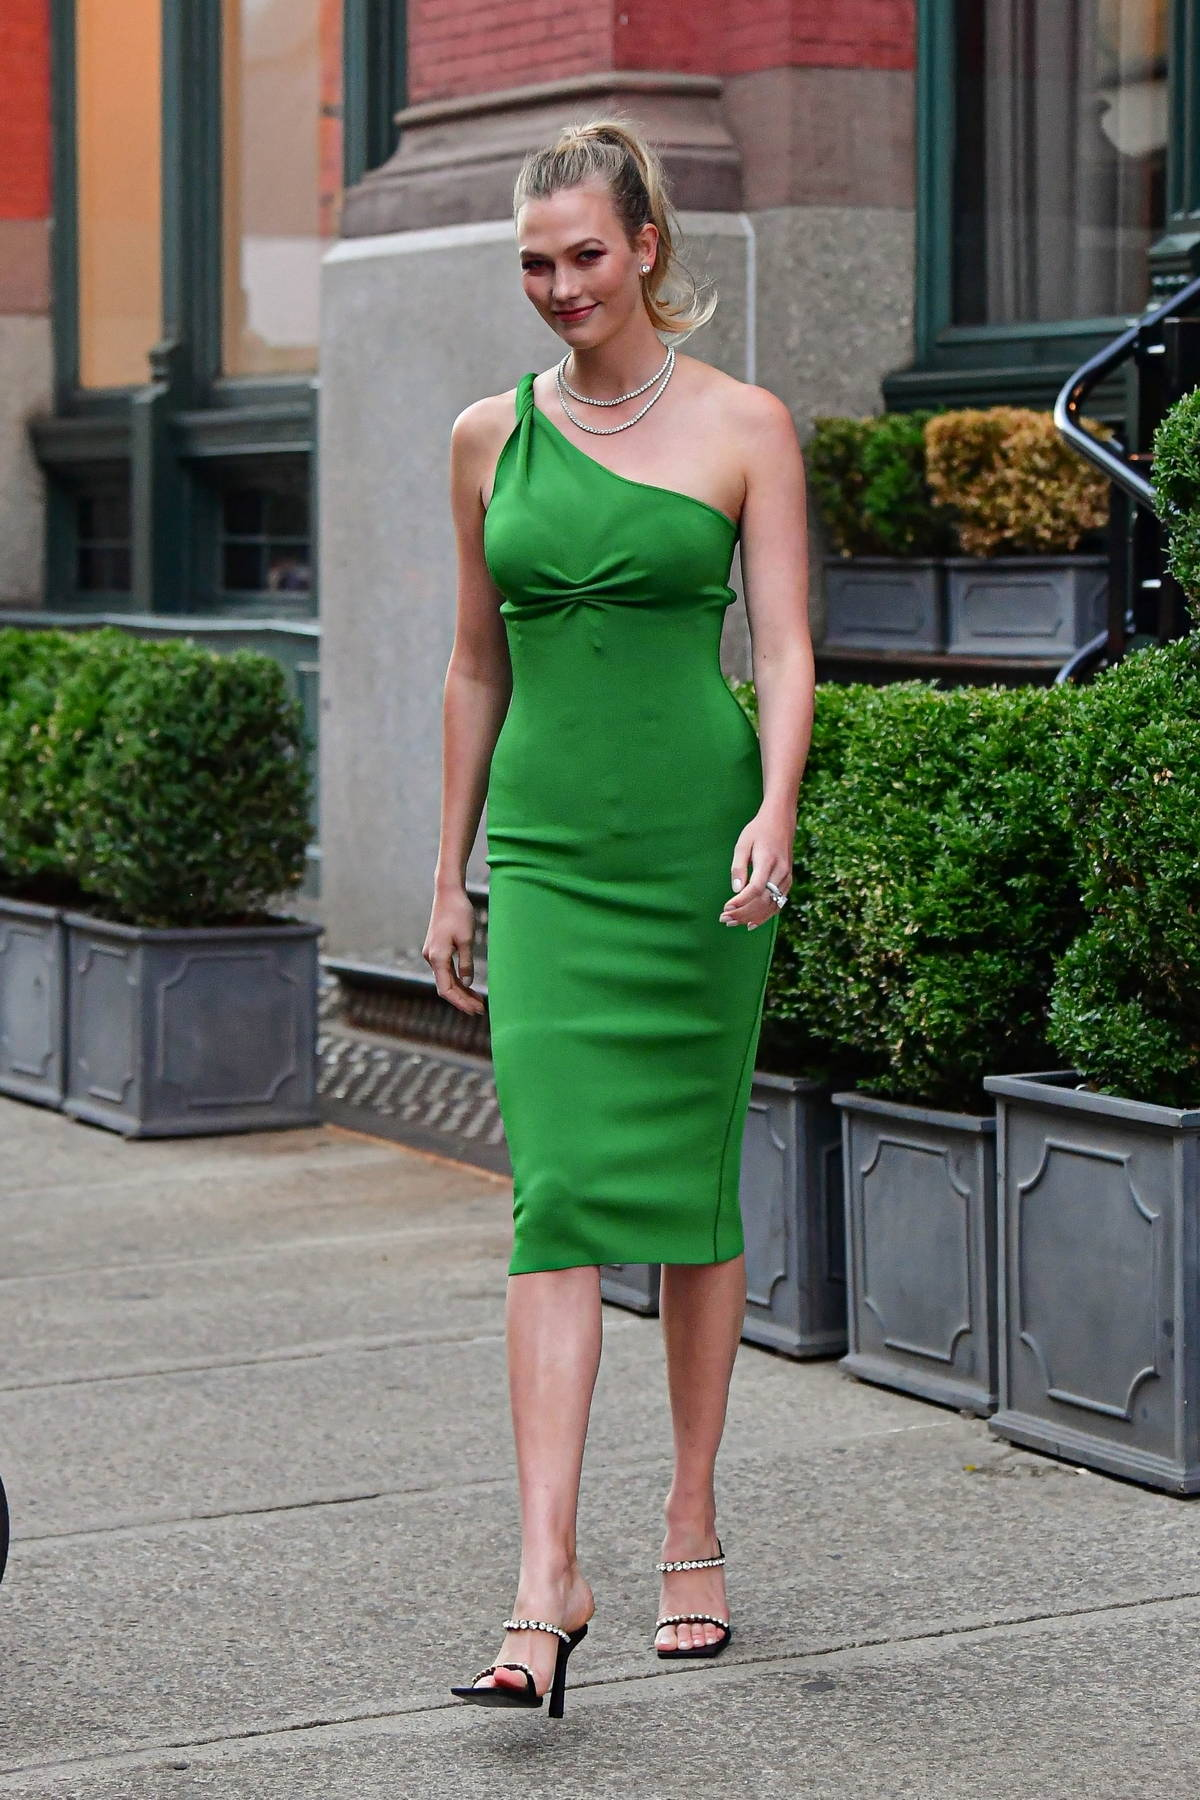 Karlie Kloss looks stunning in a green dress as she steps out for the evening in Brooklyn, New York